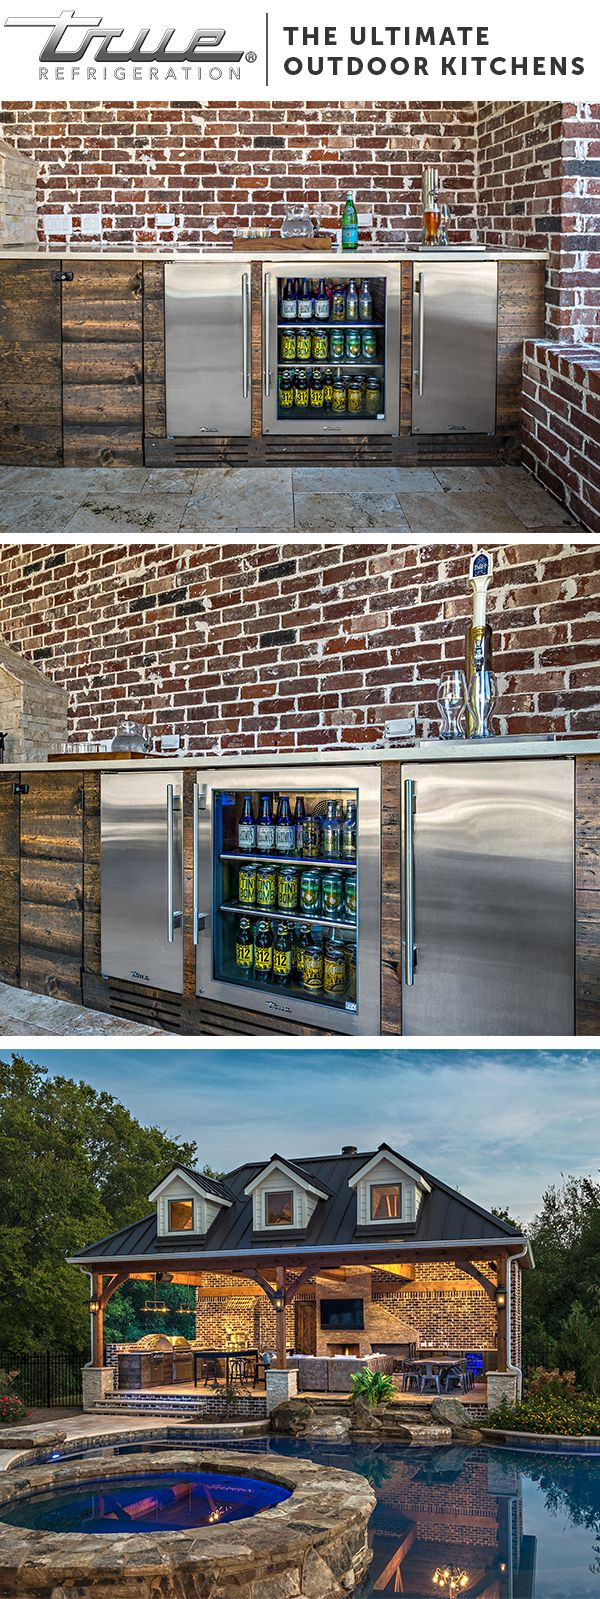 At TRUE we design products to fully suit your outdoor kitchen. Clear Ice, Beer, Drinks, and Snacks can all be stored right where you need them: outdoors. | True Residential